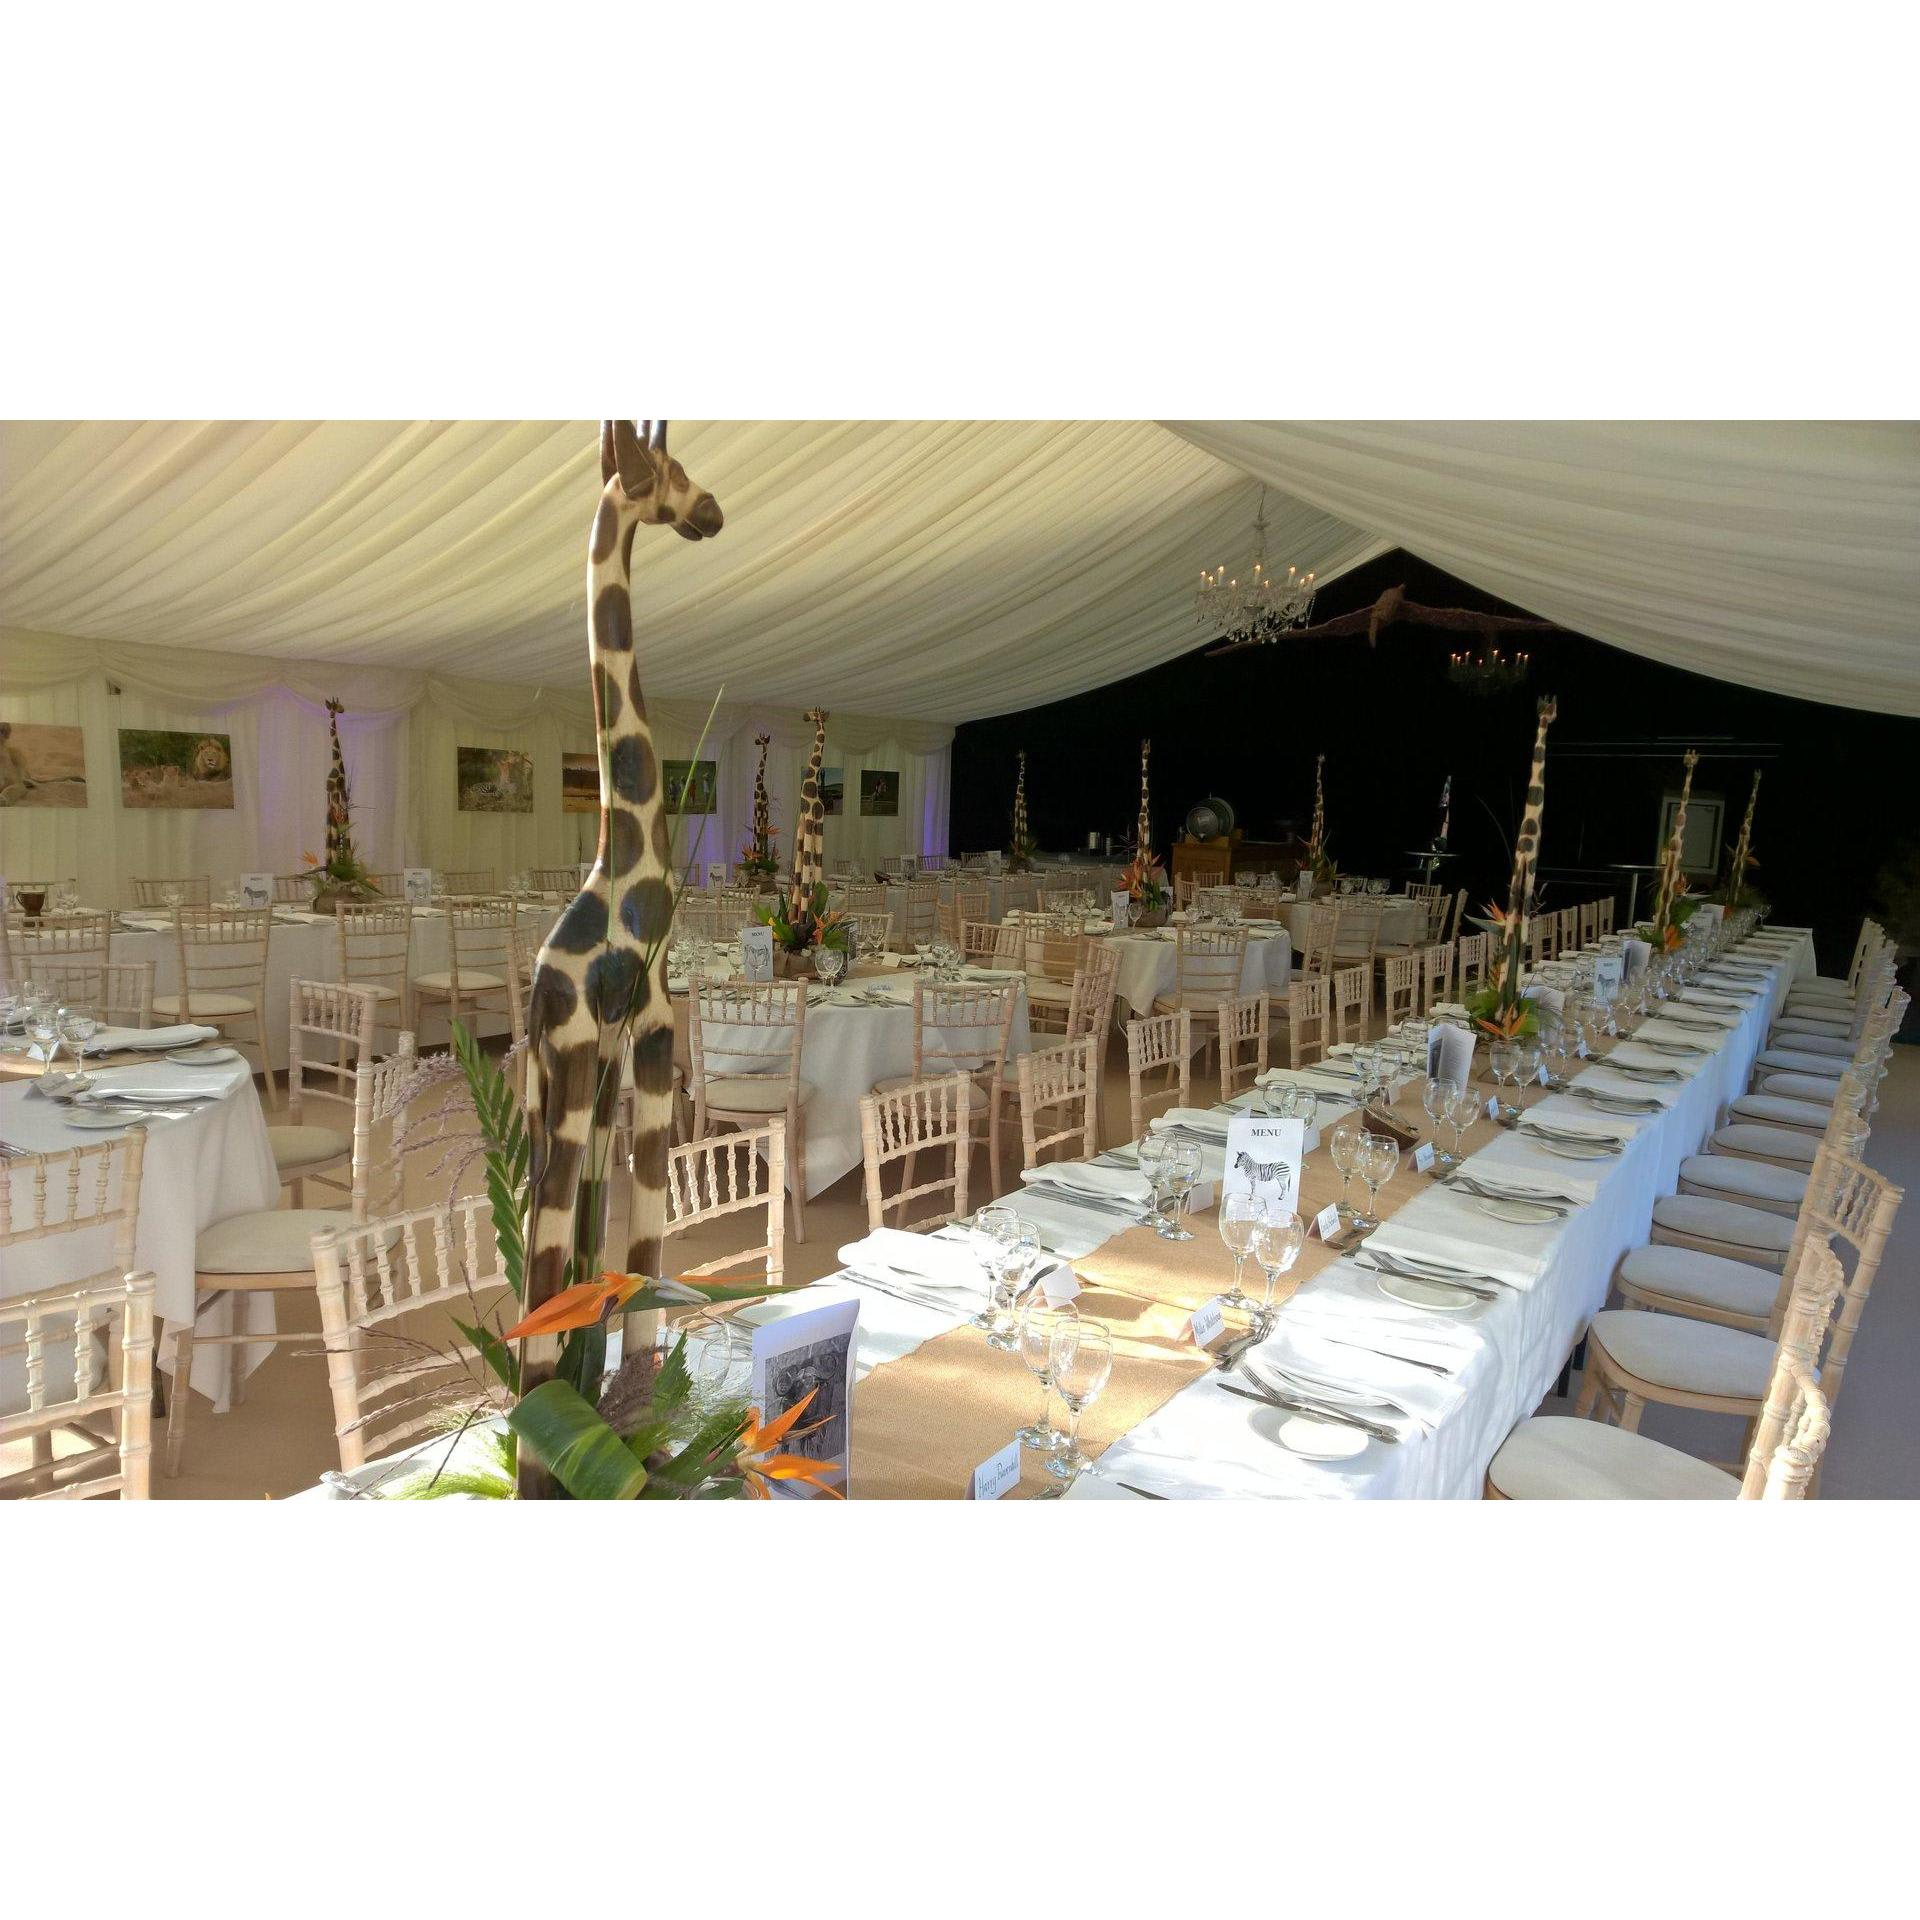 K.B Catering - Pershore, Worcestershire WR10 1QS - 07801 699597   ShowMeLocal.com